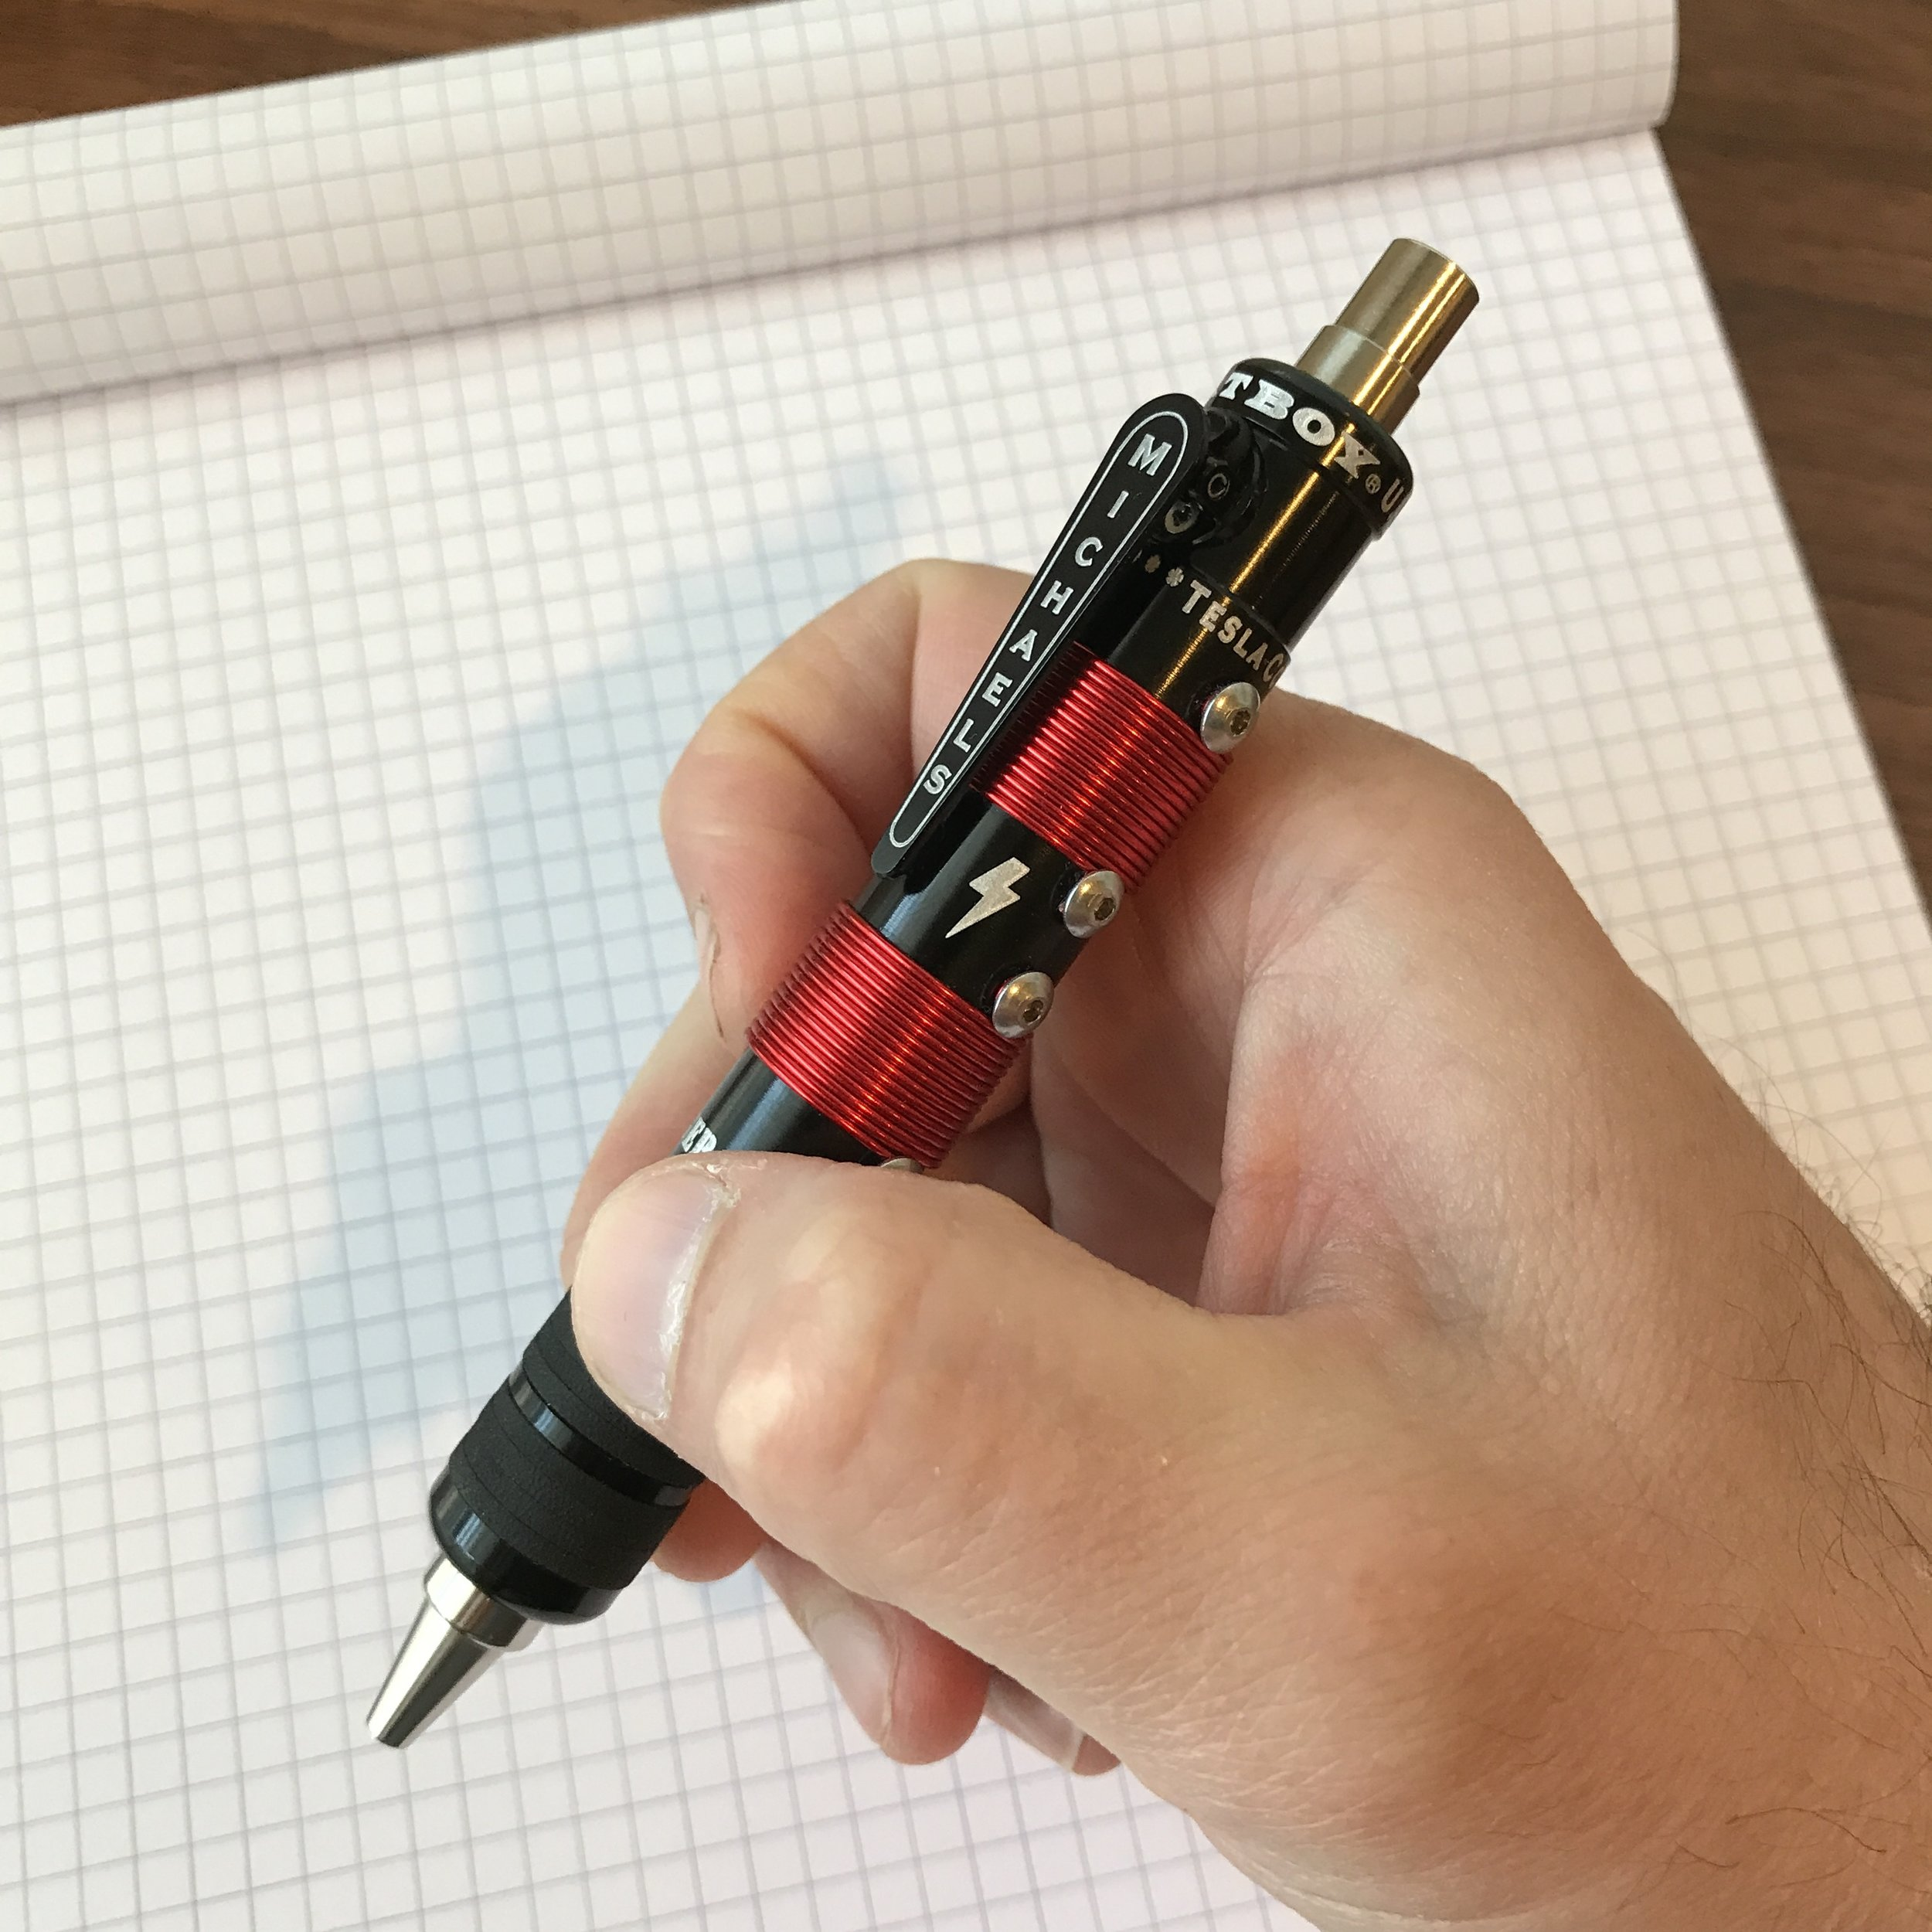 "The length and balance on this pen is perfect, but it's a little too ""fat"" for me to hold comfortably for long periods of time. To compare, the pen has a similar feel to fatter fountain pens like the Pelikan M1000, Montblanc 149, Delta Dolcevita Oversize, or even a Jinhao 159."